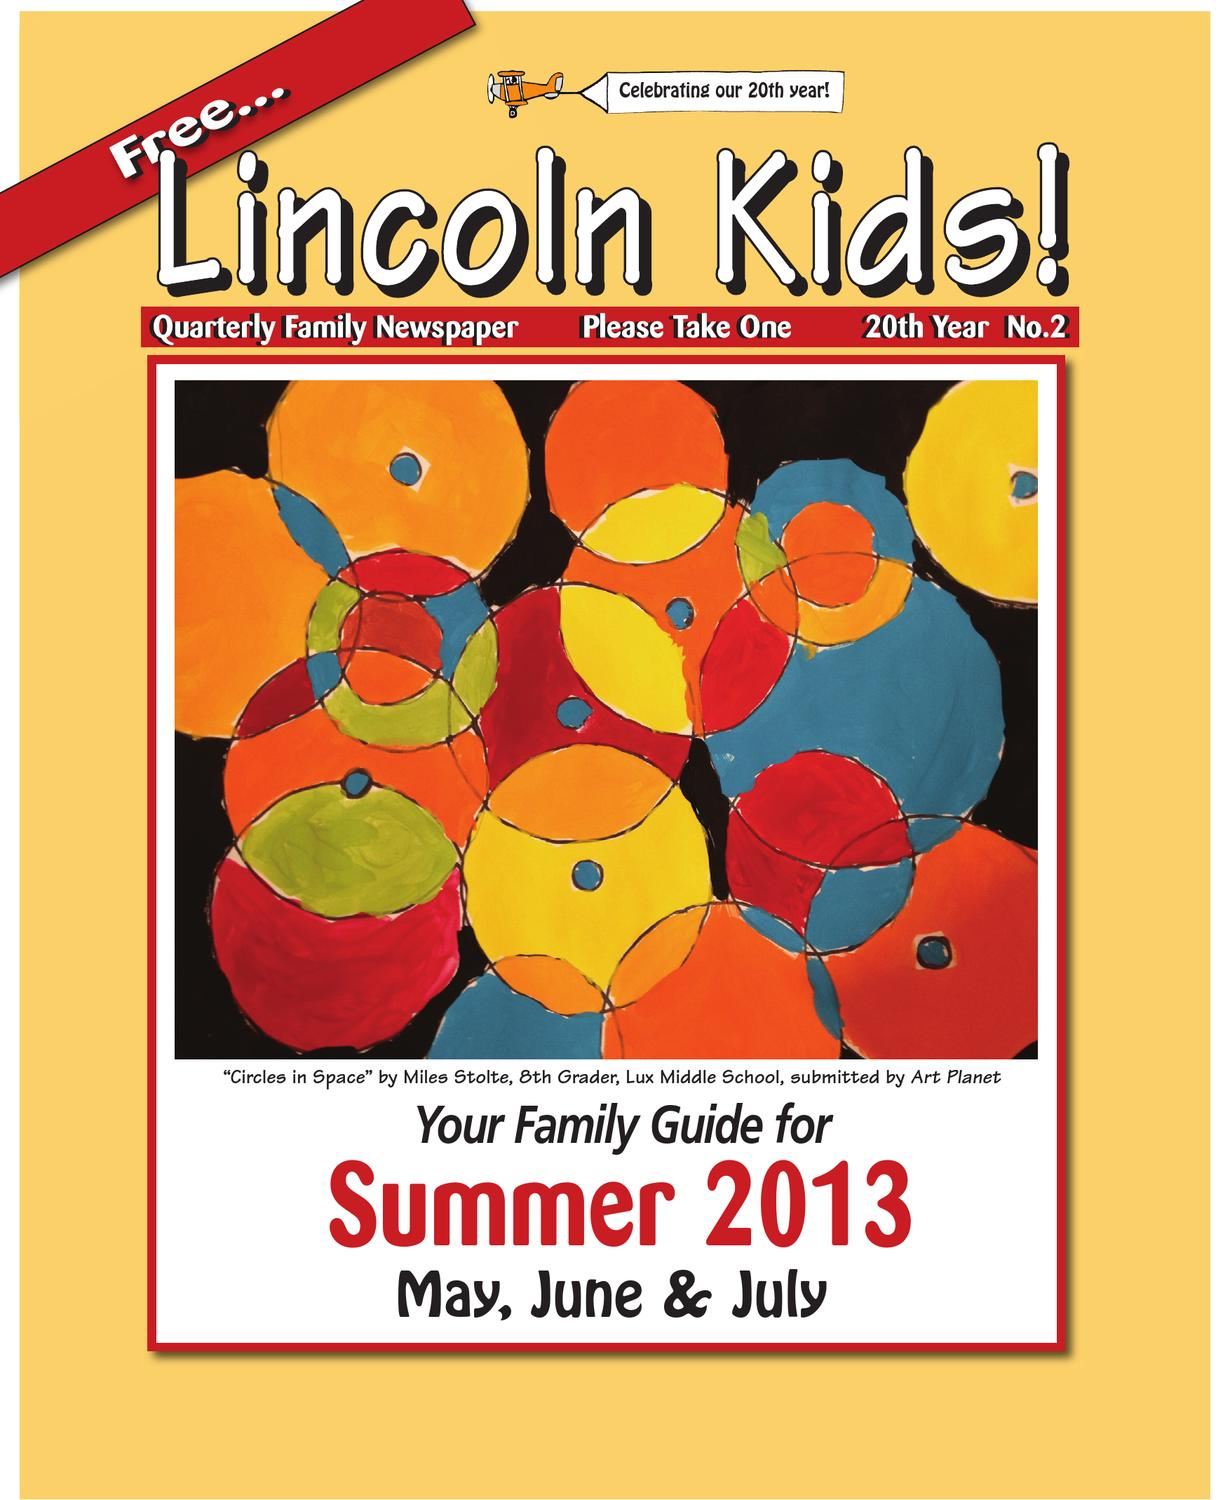 Lincoln Kids Newspaper Summer 2013 Issue By